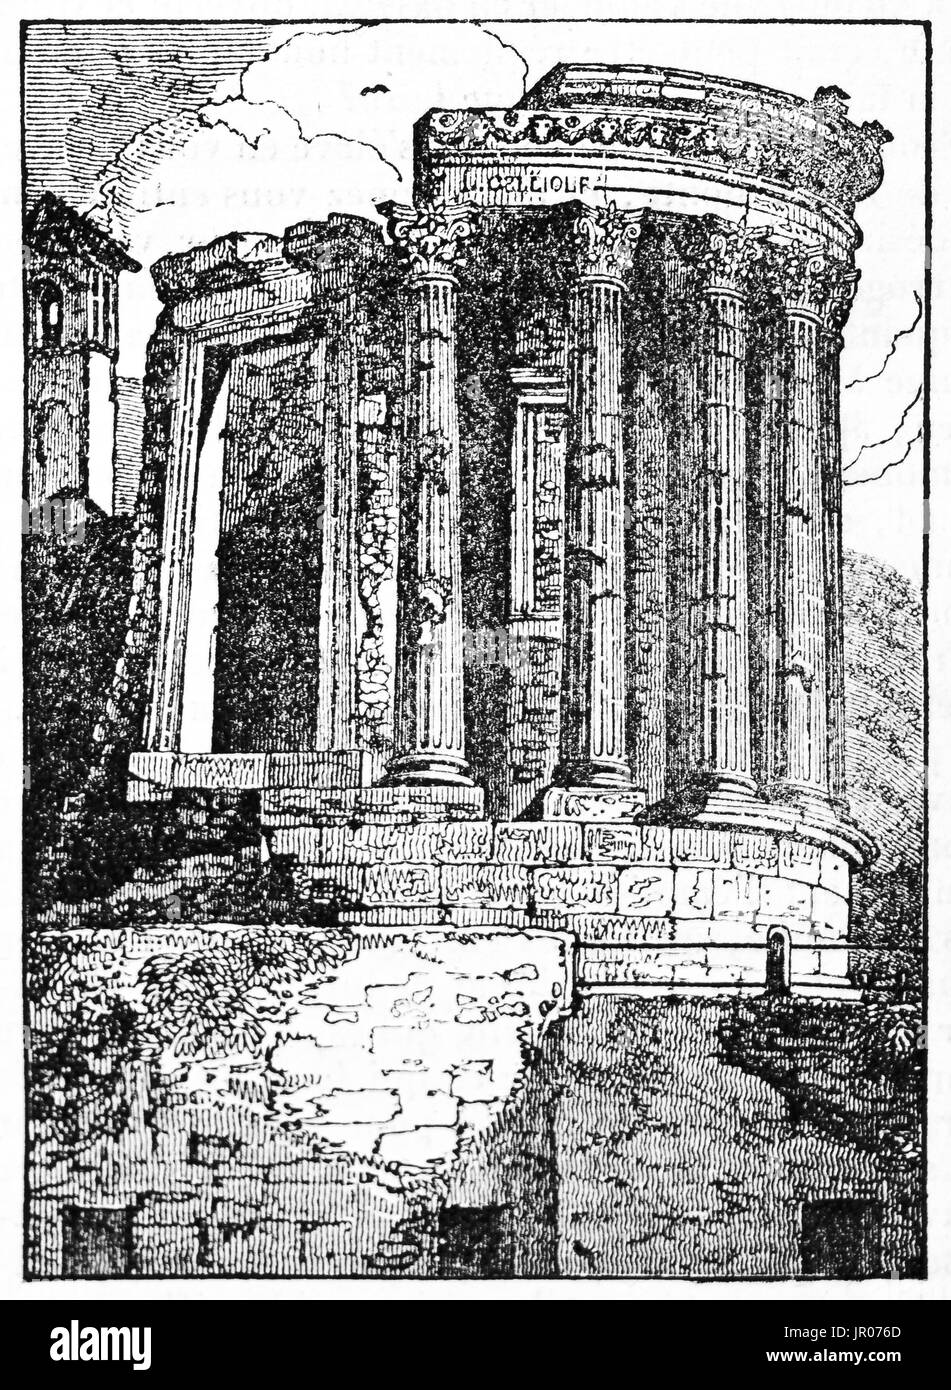 Old illustration of Temple of Sibyl, Tivoli, Italy. By unidentified author, published on Magasin Pittoresque, 1833. - Stock Image